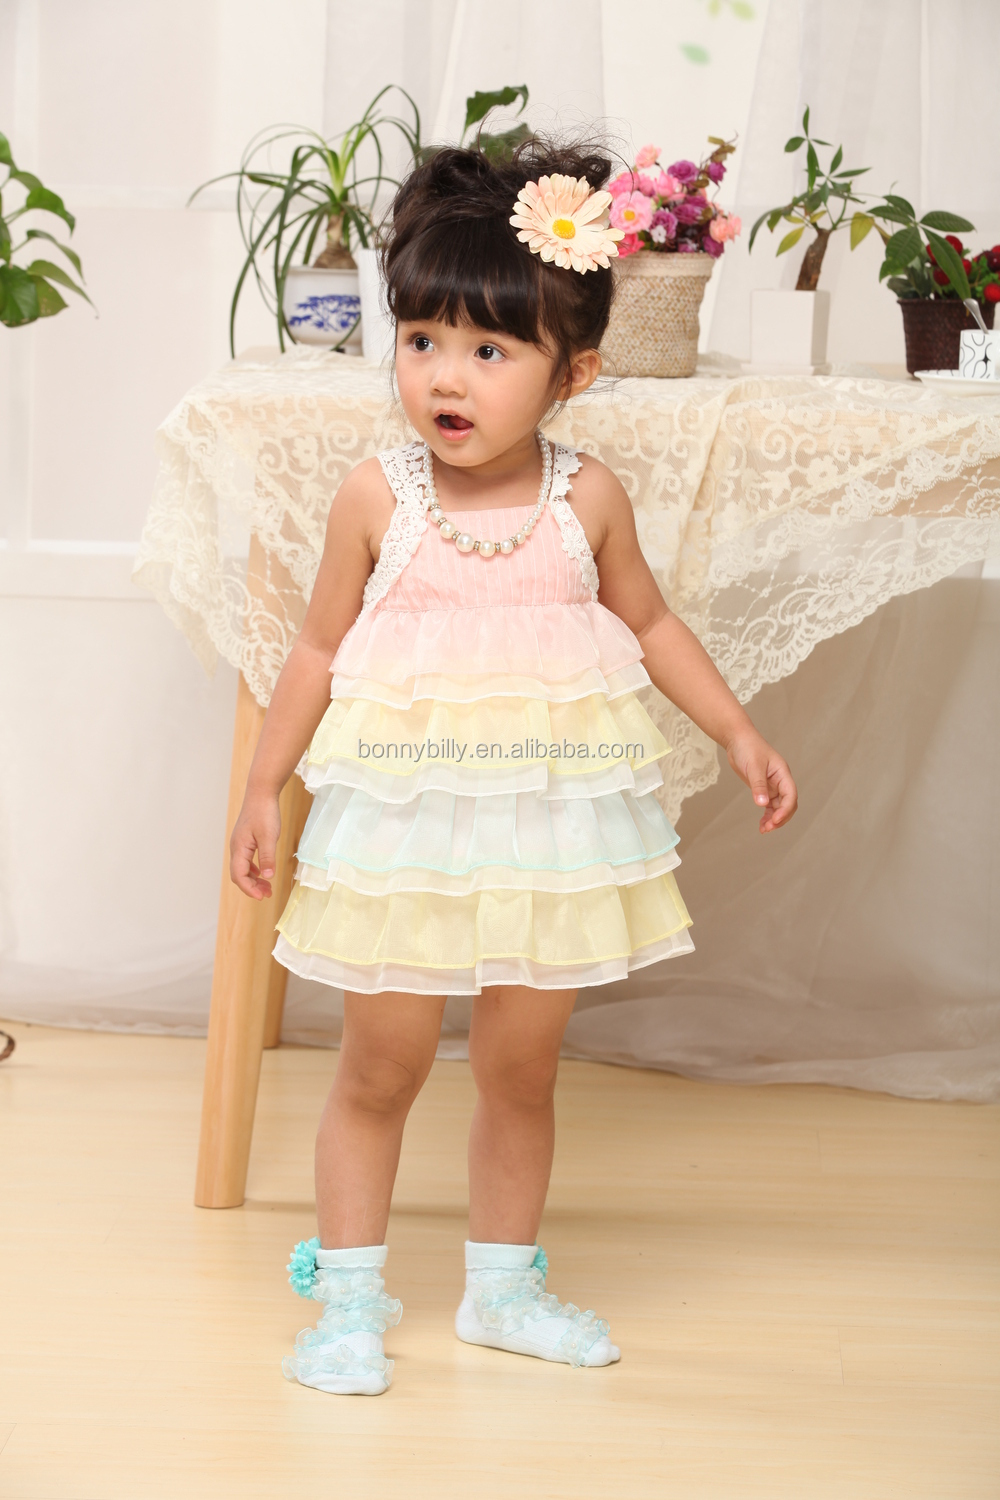 Baby clothes clothing products baby clothes clothing manufacturers